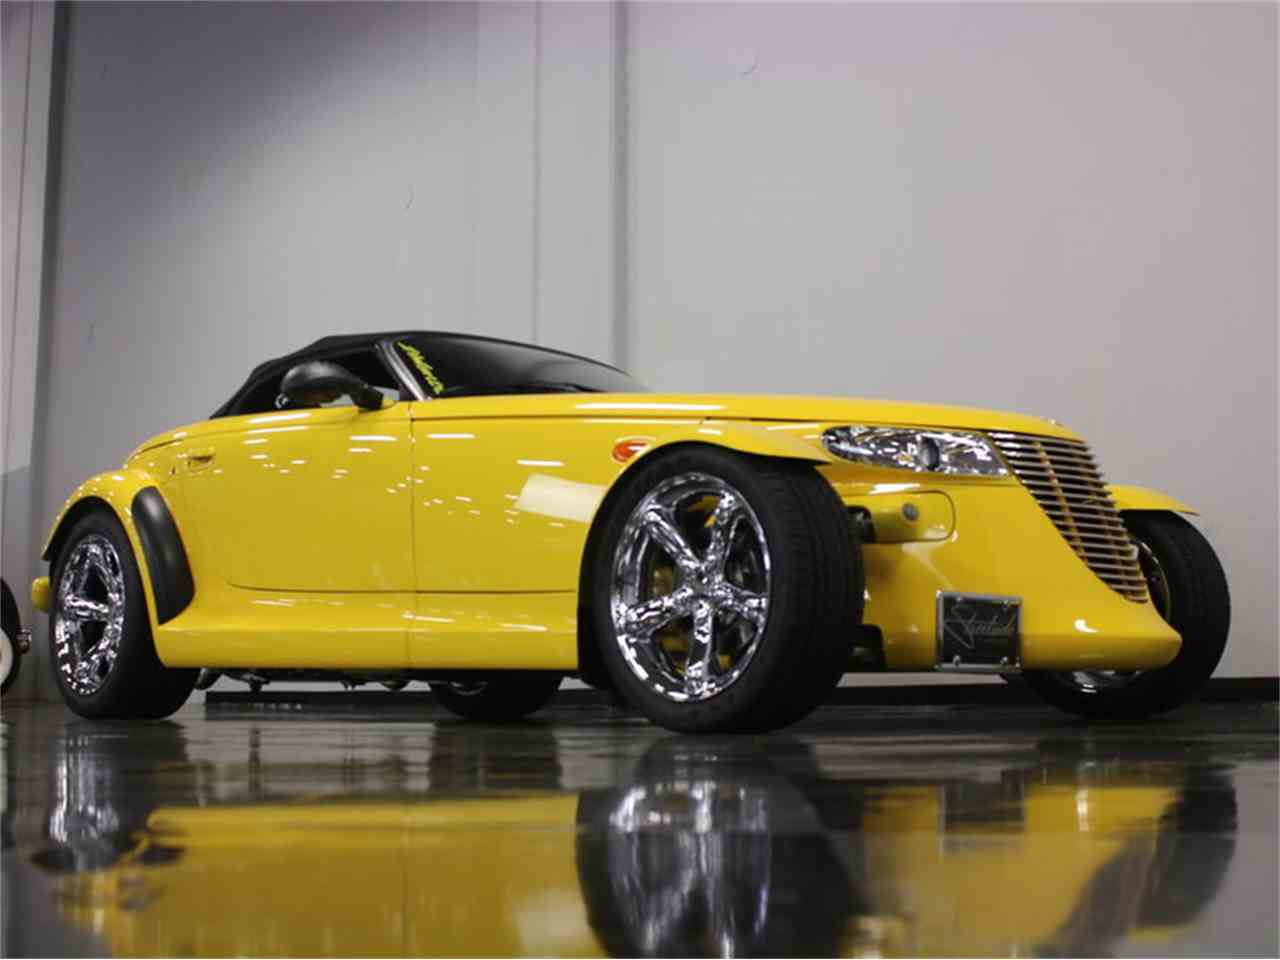 Large Picture of 1999 Prowler located in Ft Worth Texas Offered by Streetside Classics - Dallas / Fort Worth - J56O